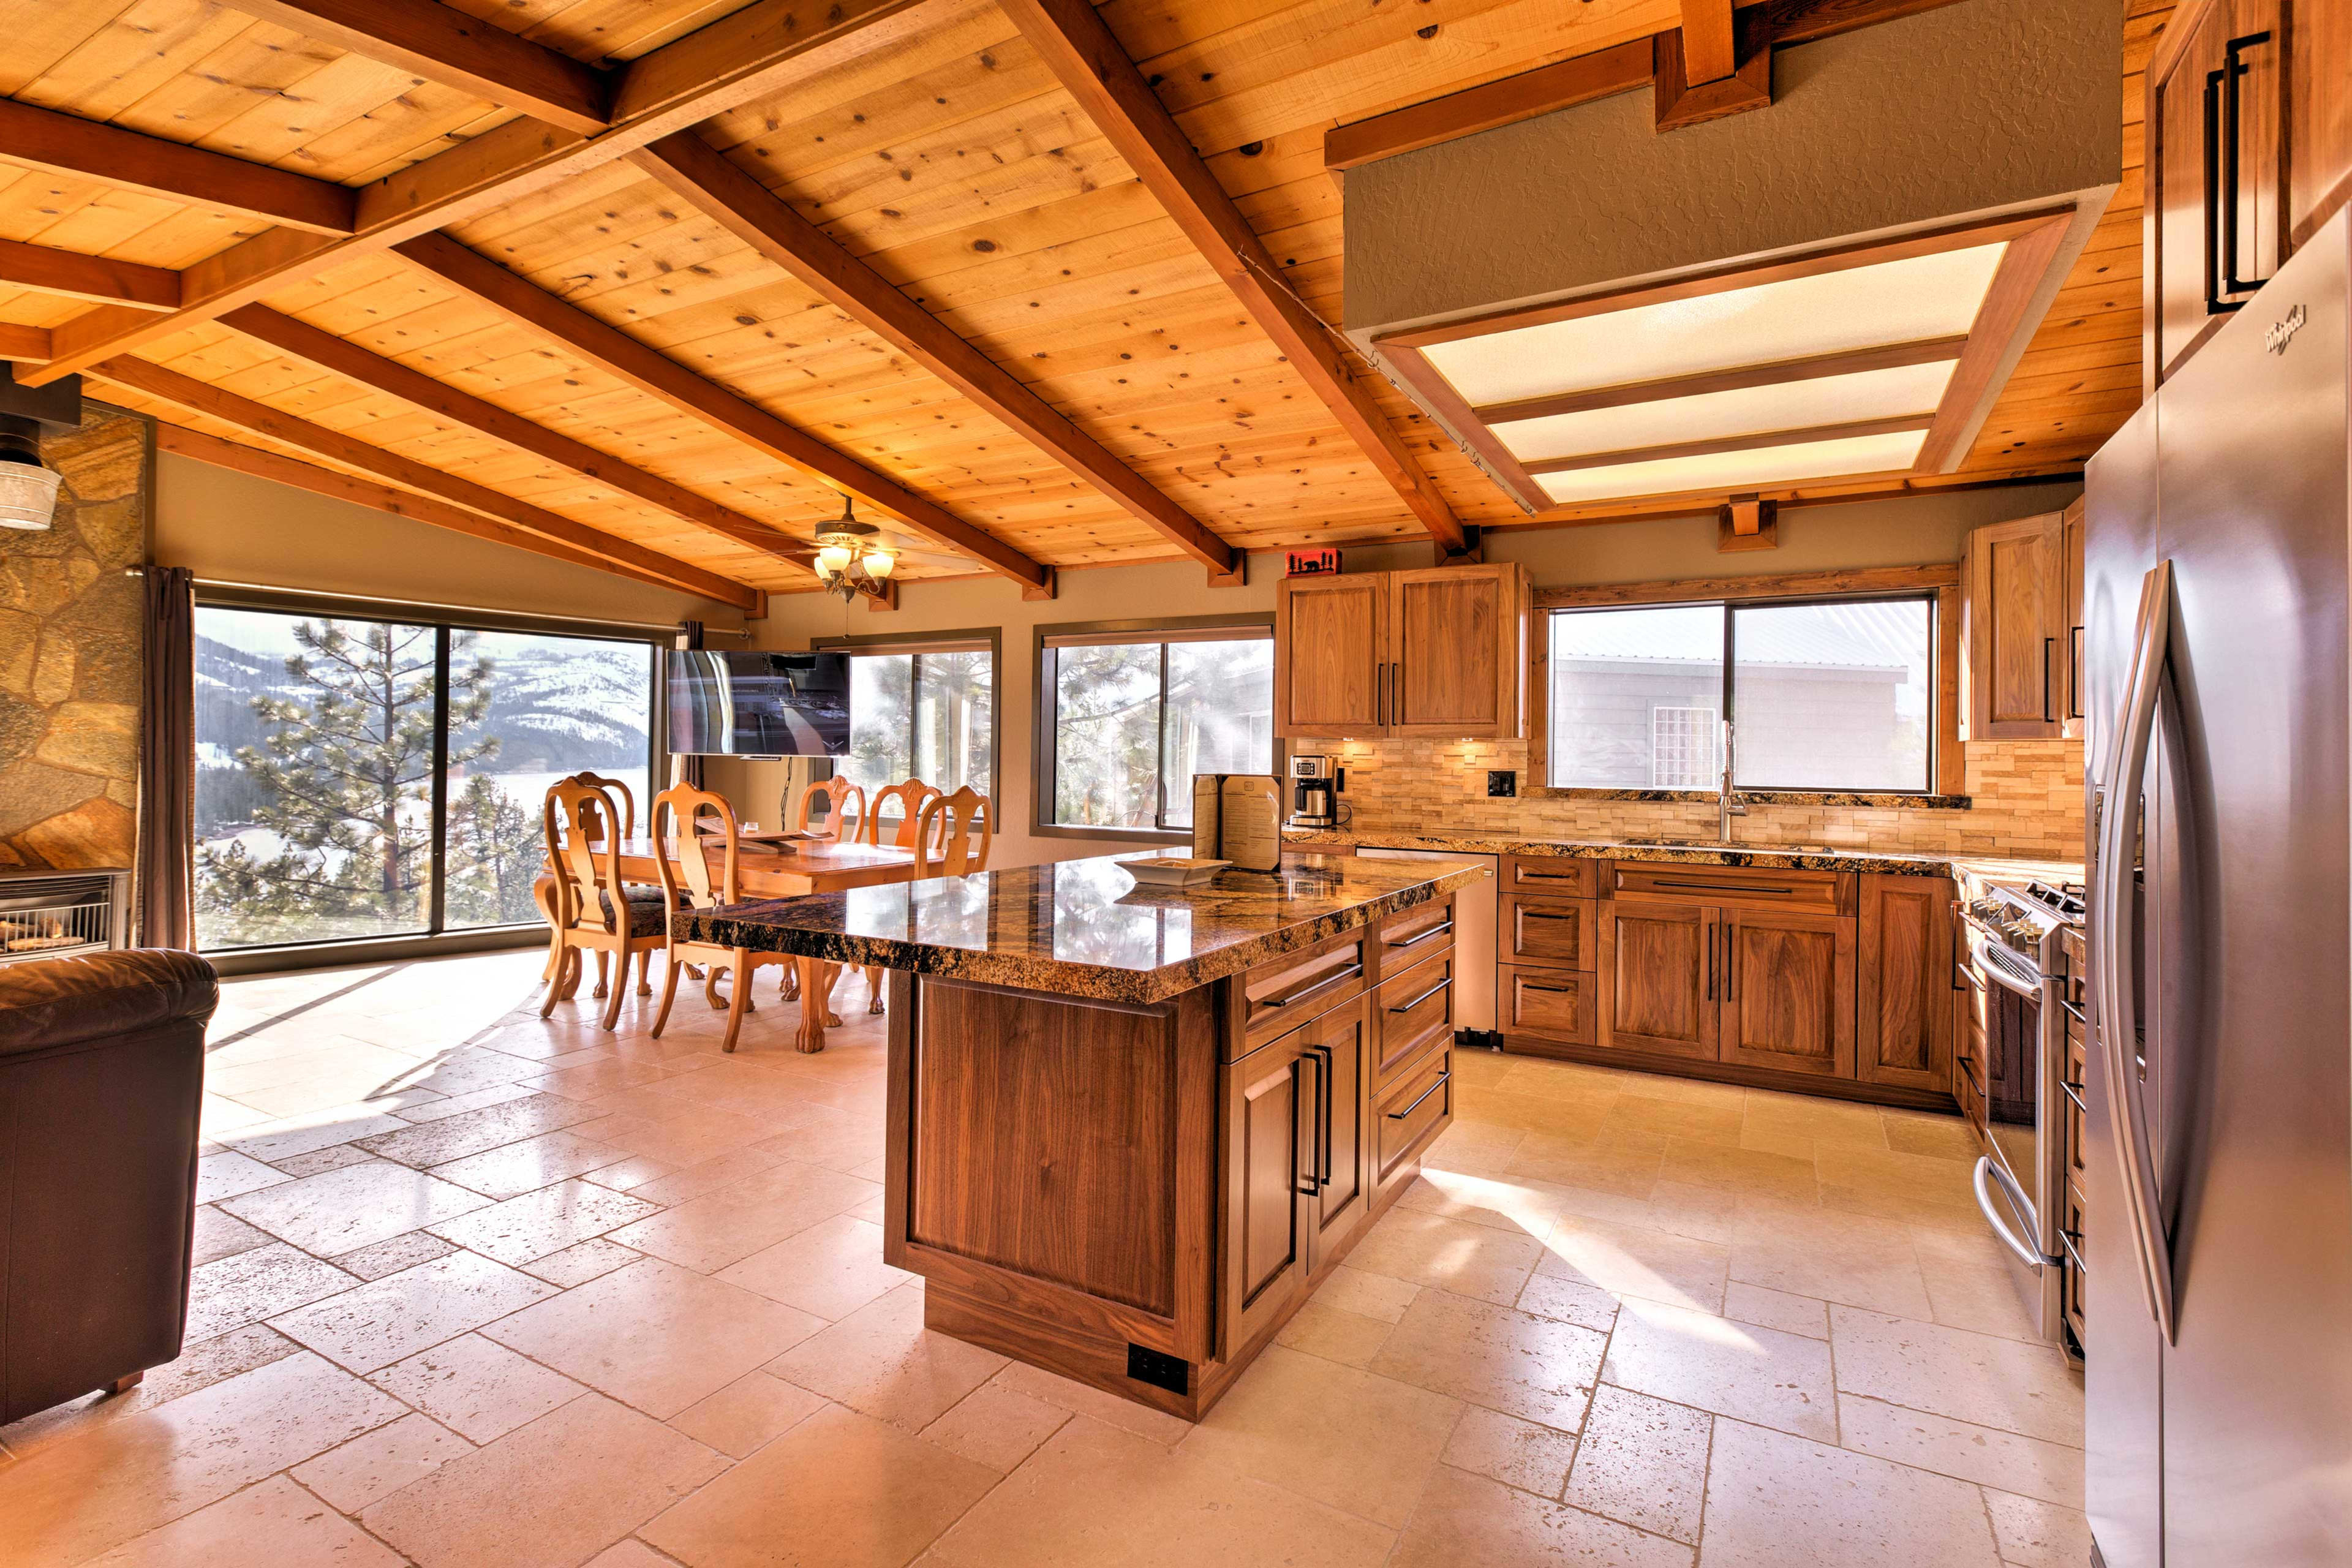 Open beam ceilings add a rustic element.